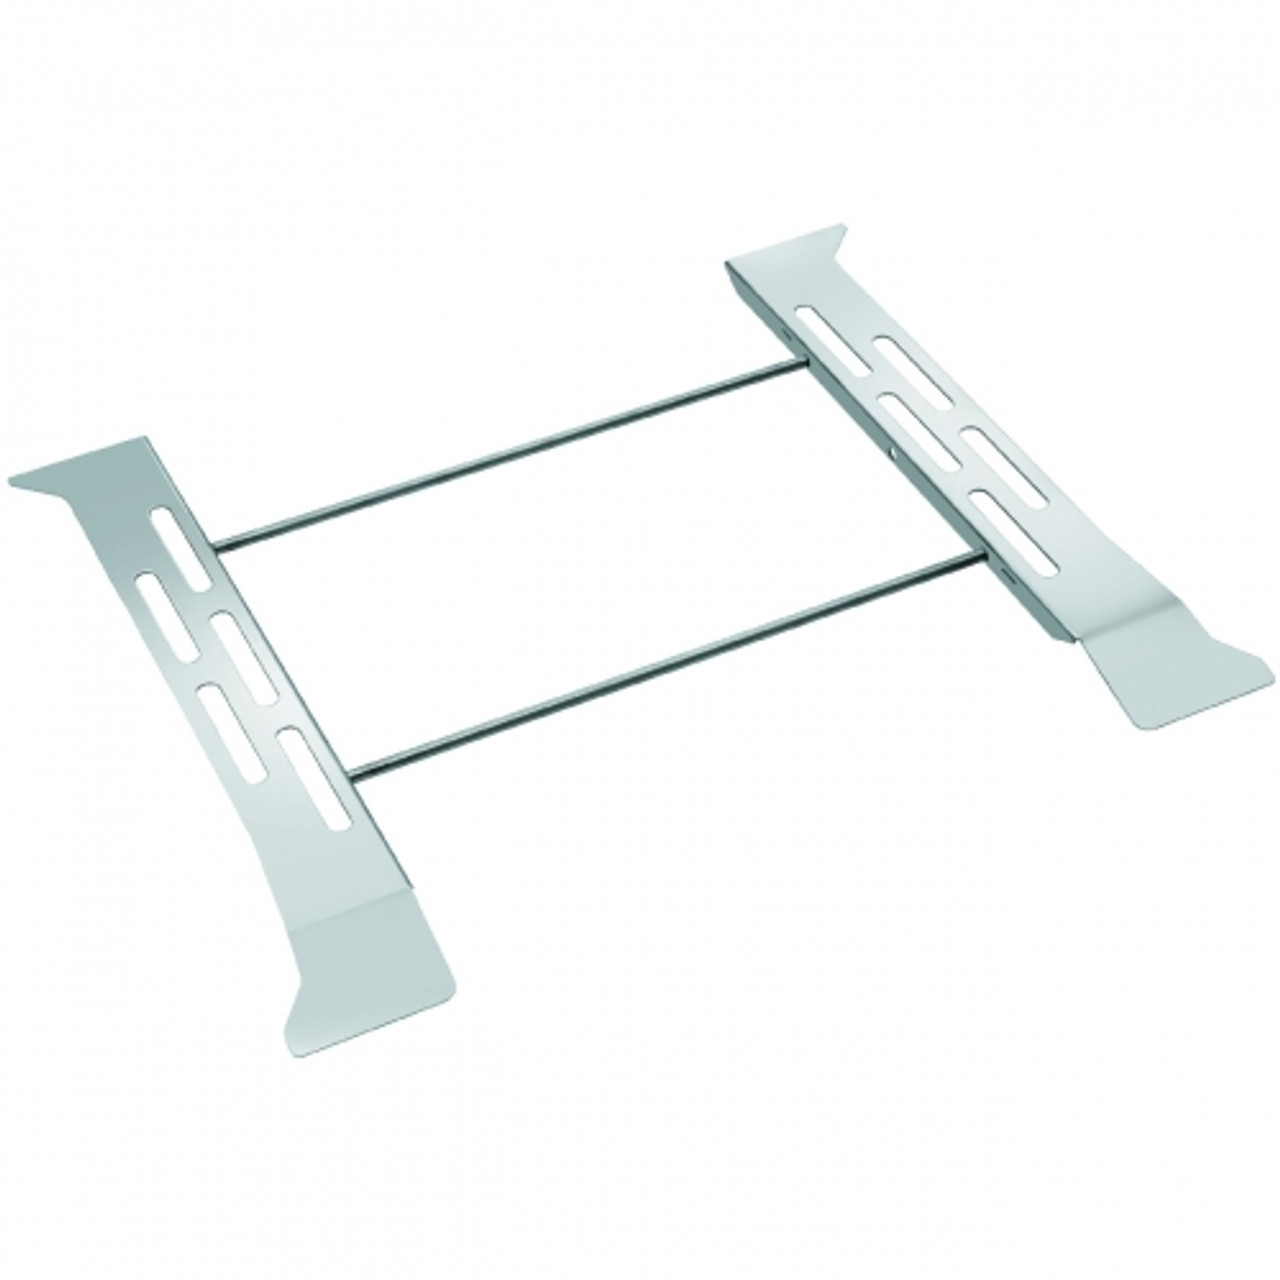 Smeg RB40A2 Adapter for Round Baskets - For Smeg Dishwashers